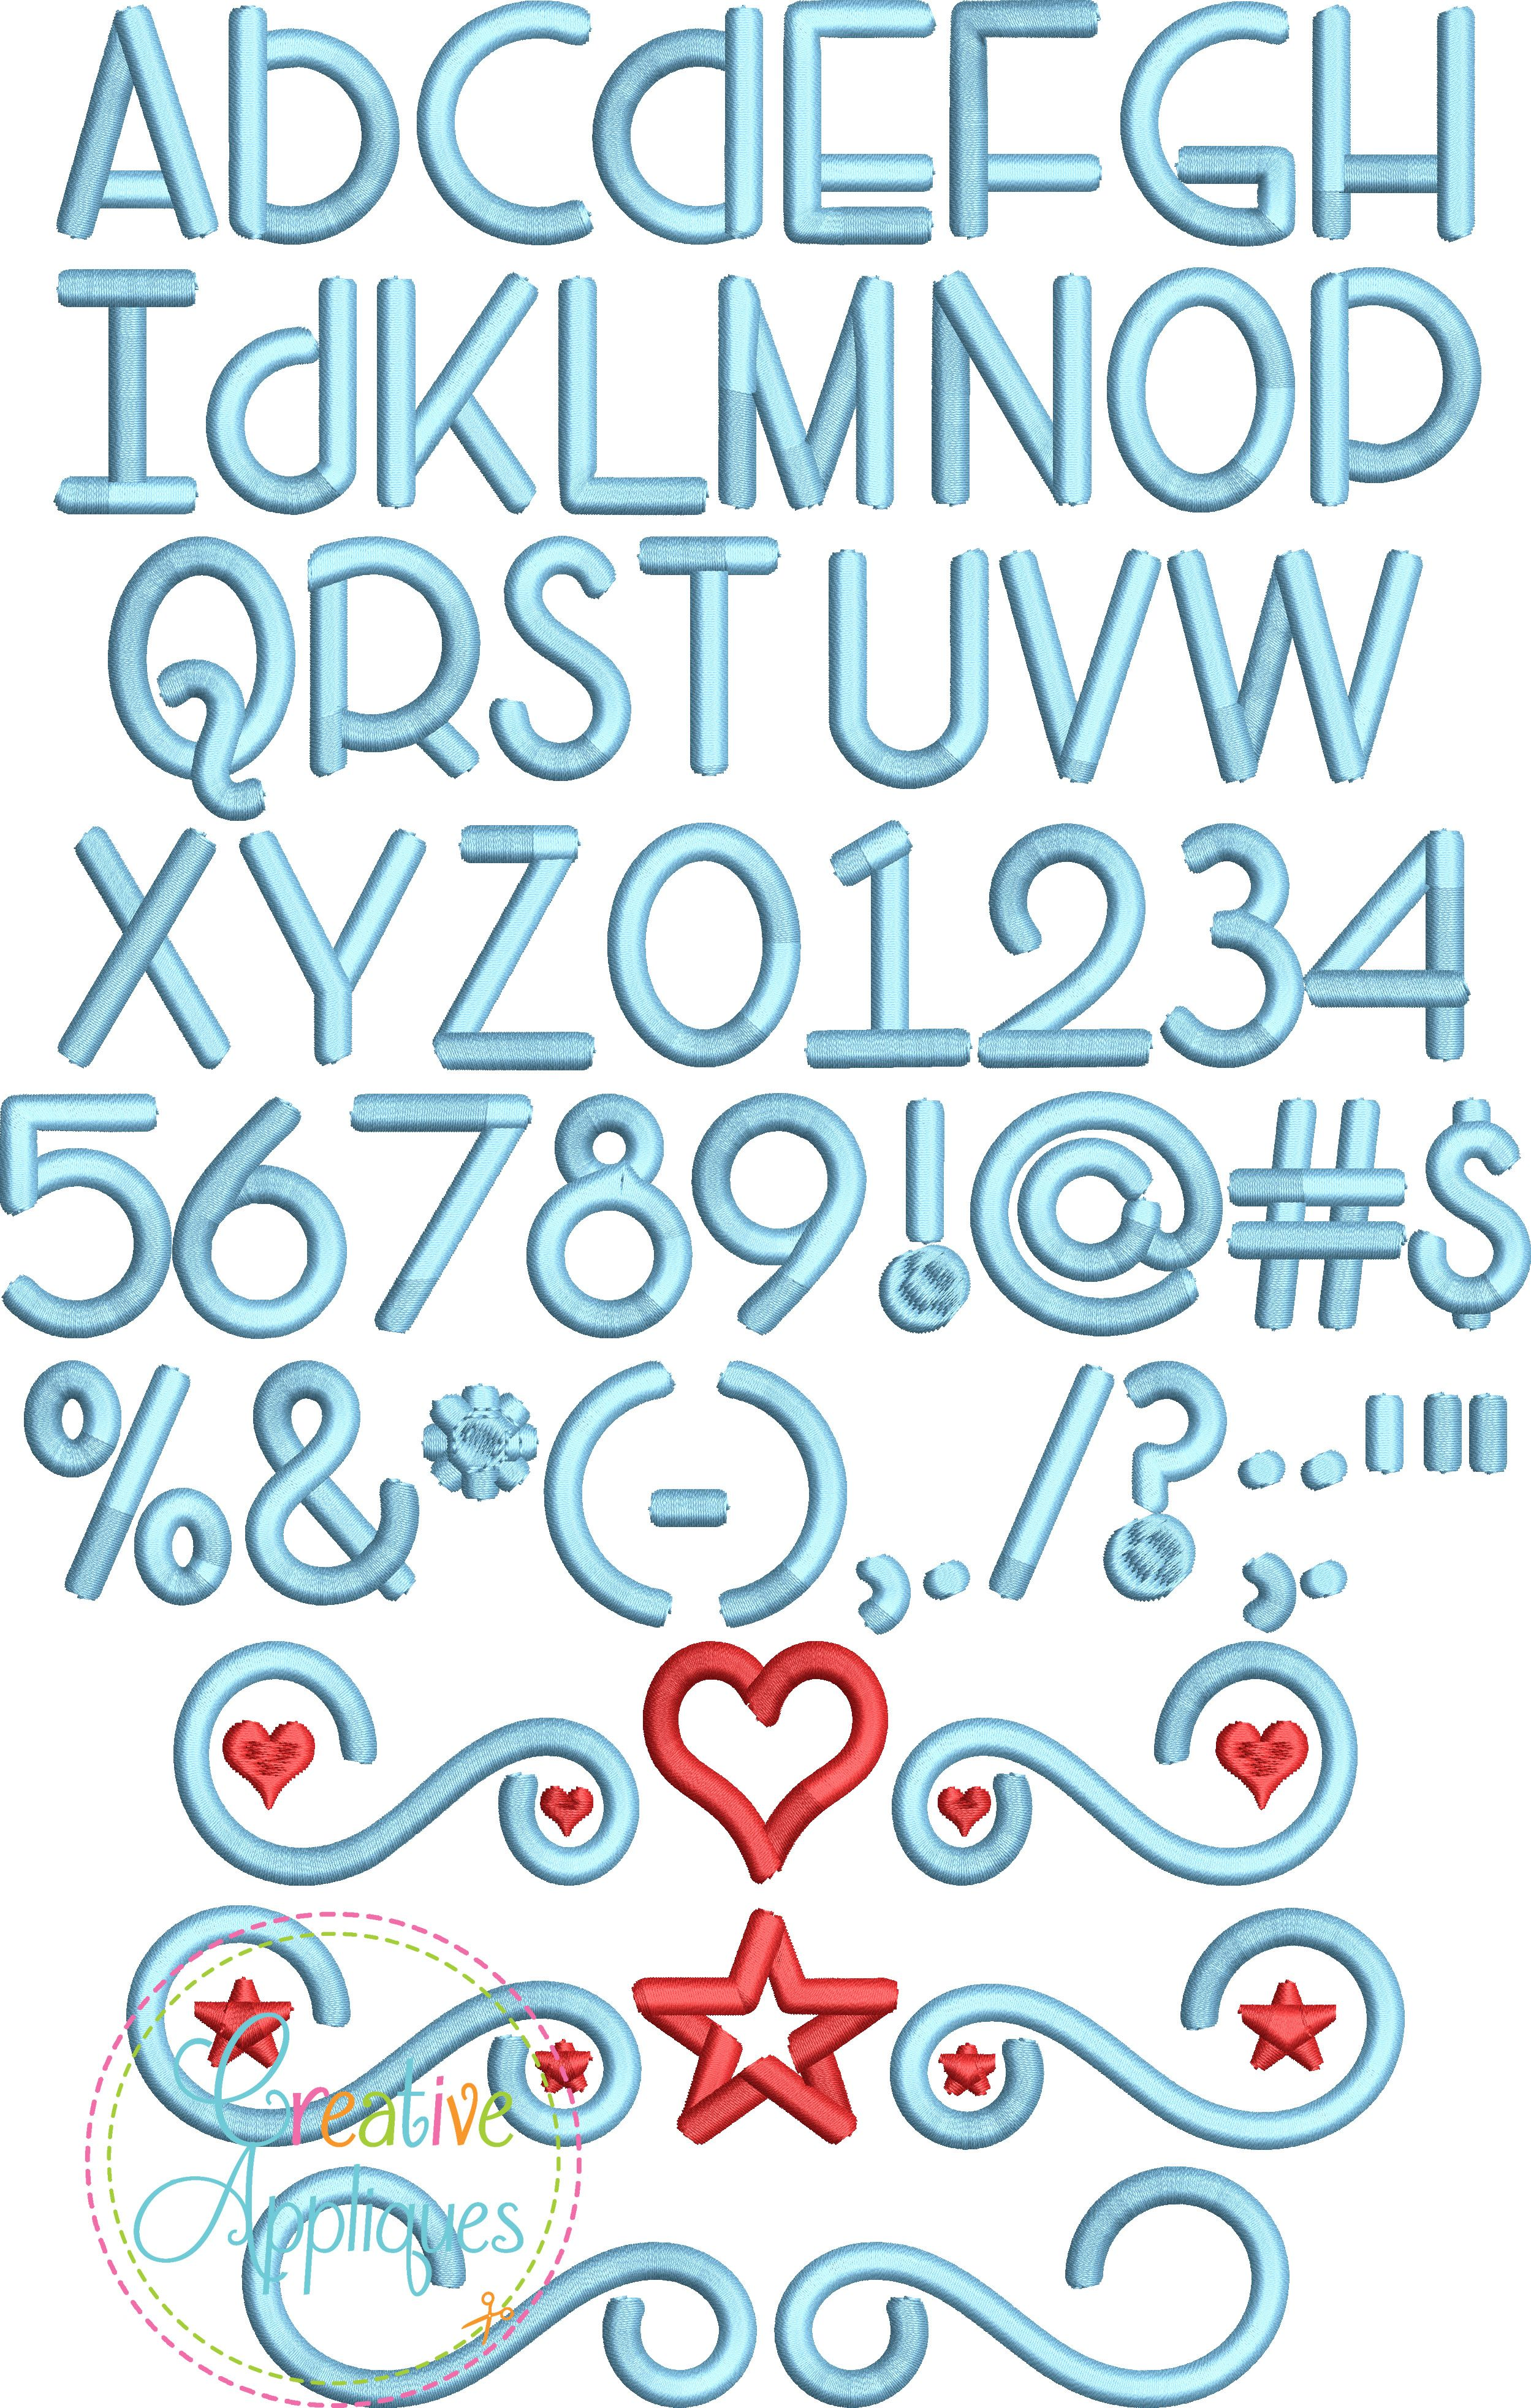 Head Versus Heart Embroidery Font Alphabet Embroidery